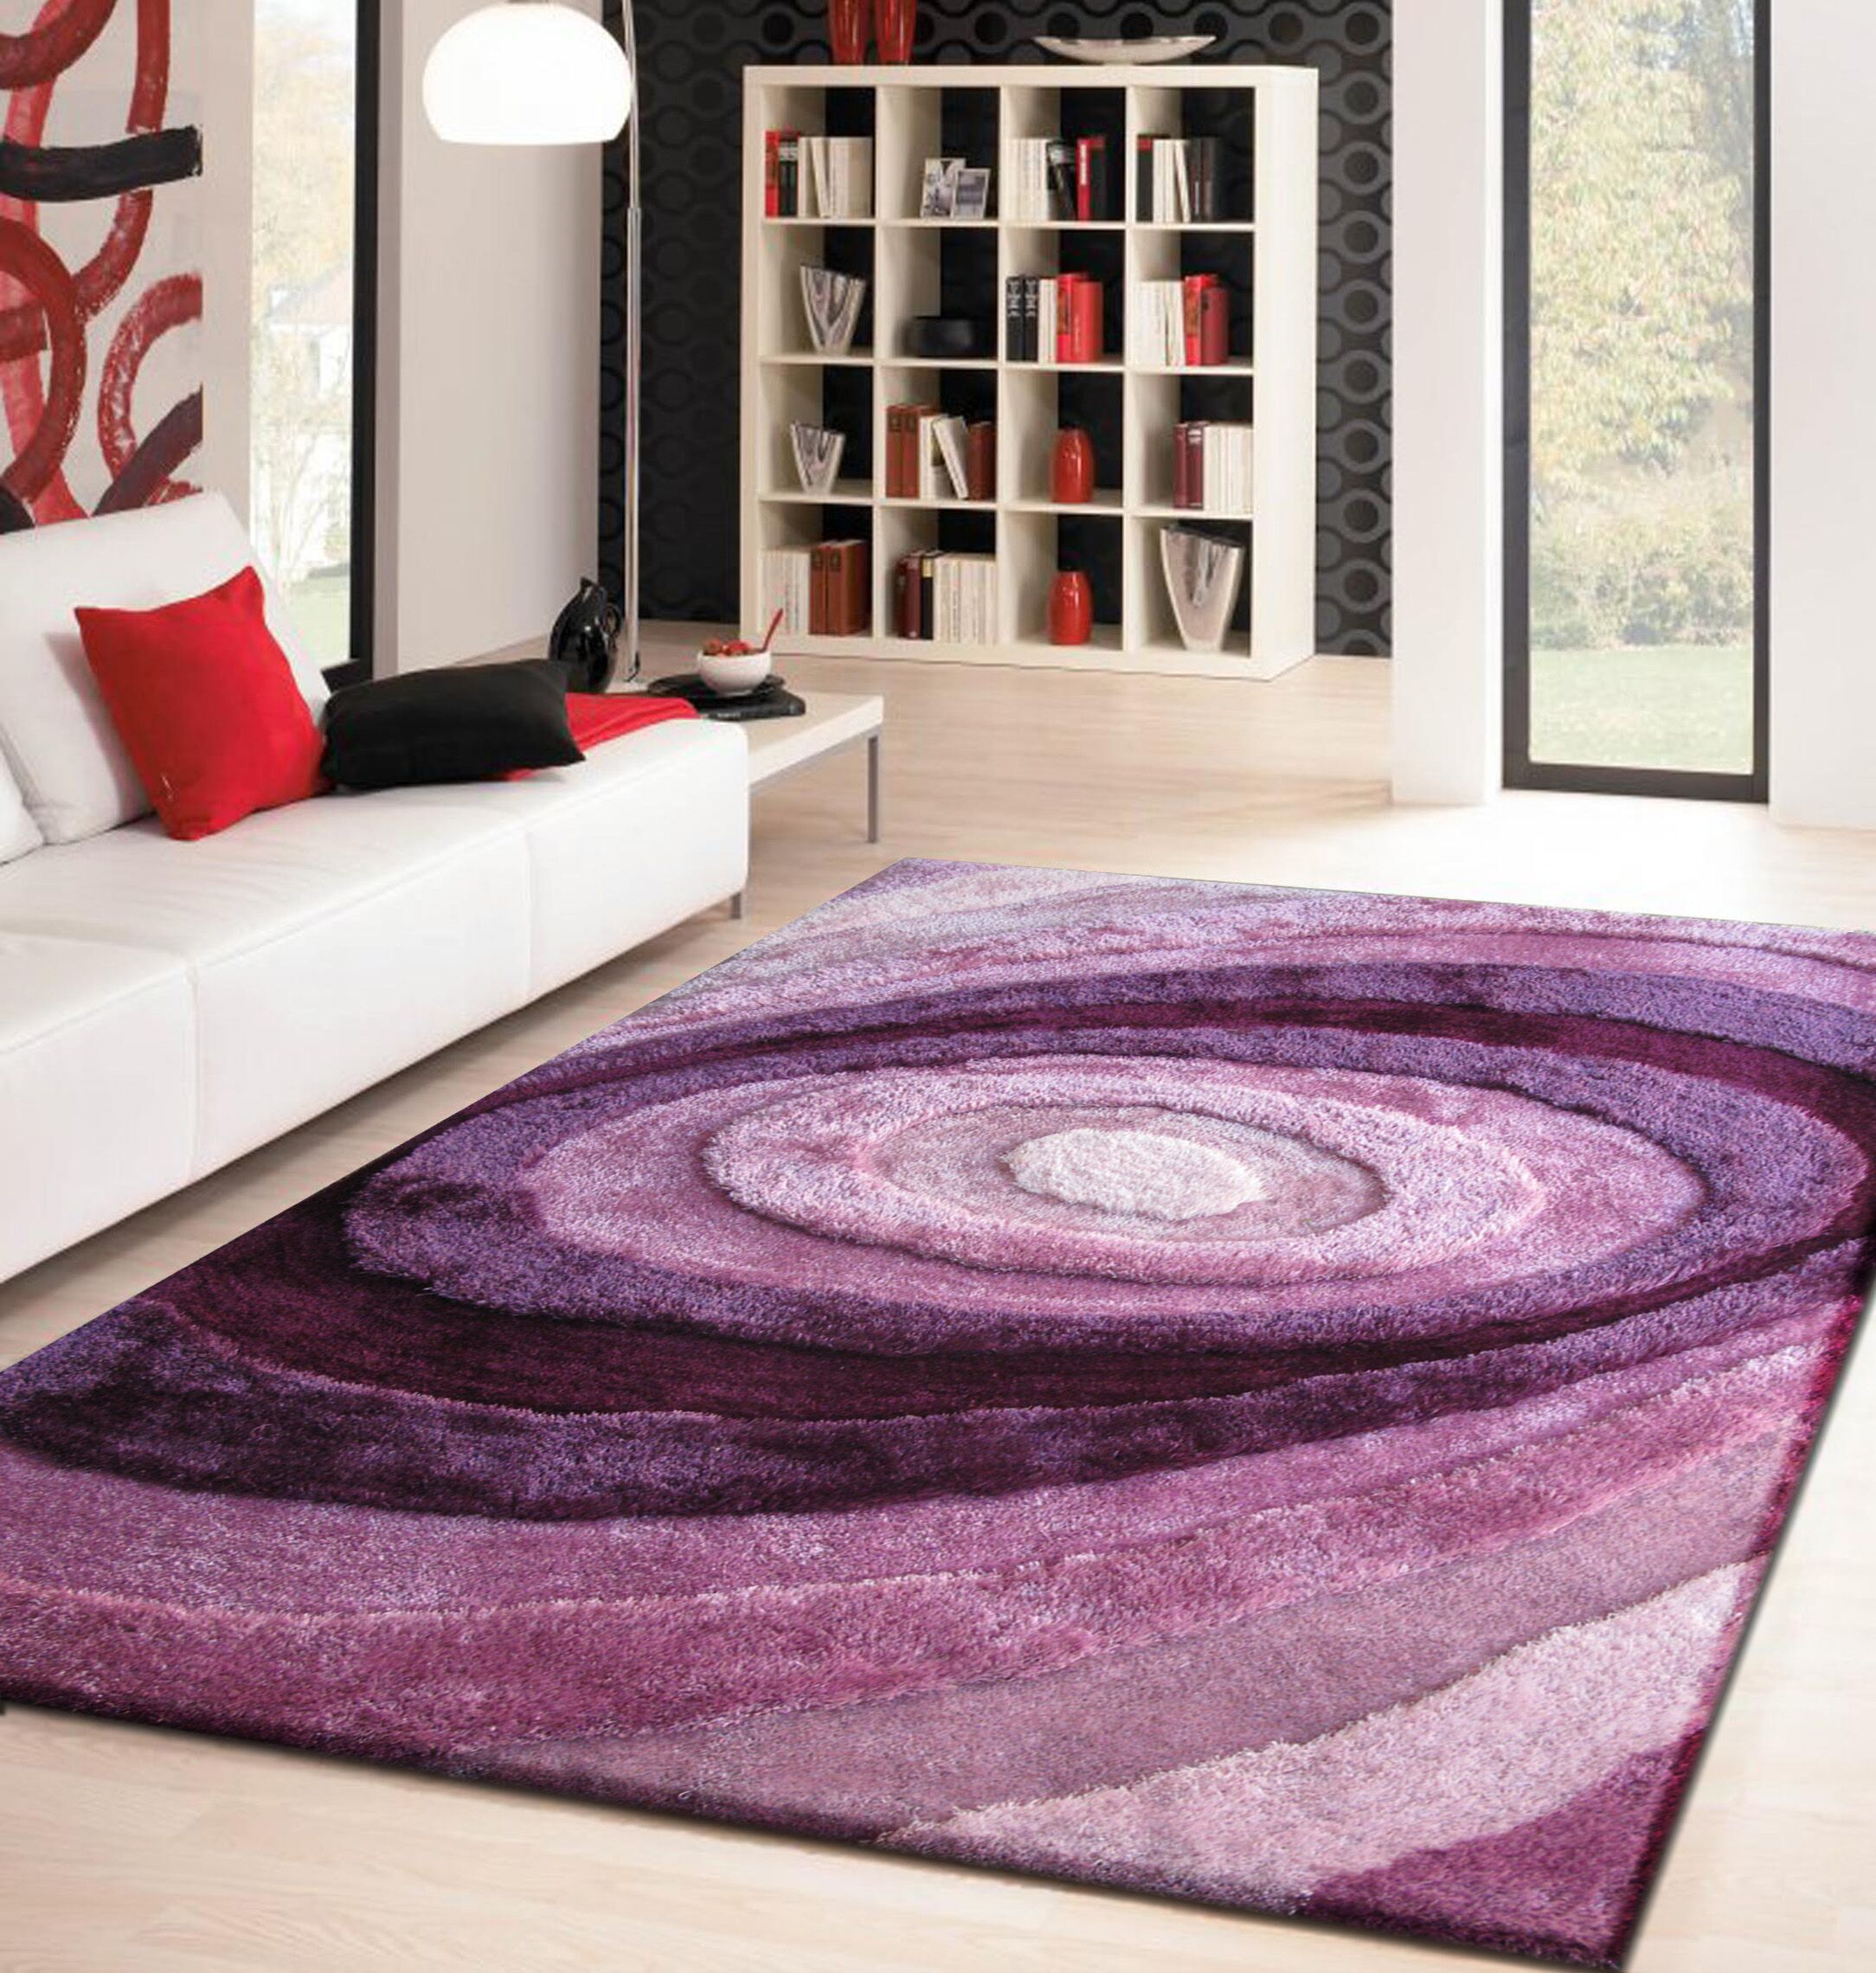 Sherlock Hand-Tufted Lavender Area Rug Rug Size: Rectangle 5' x 7'